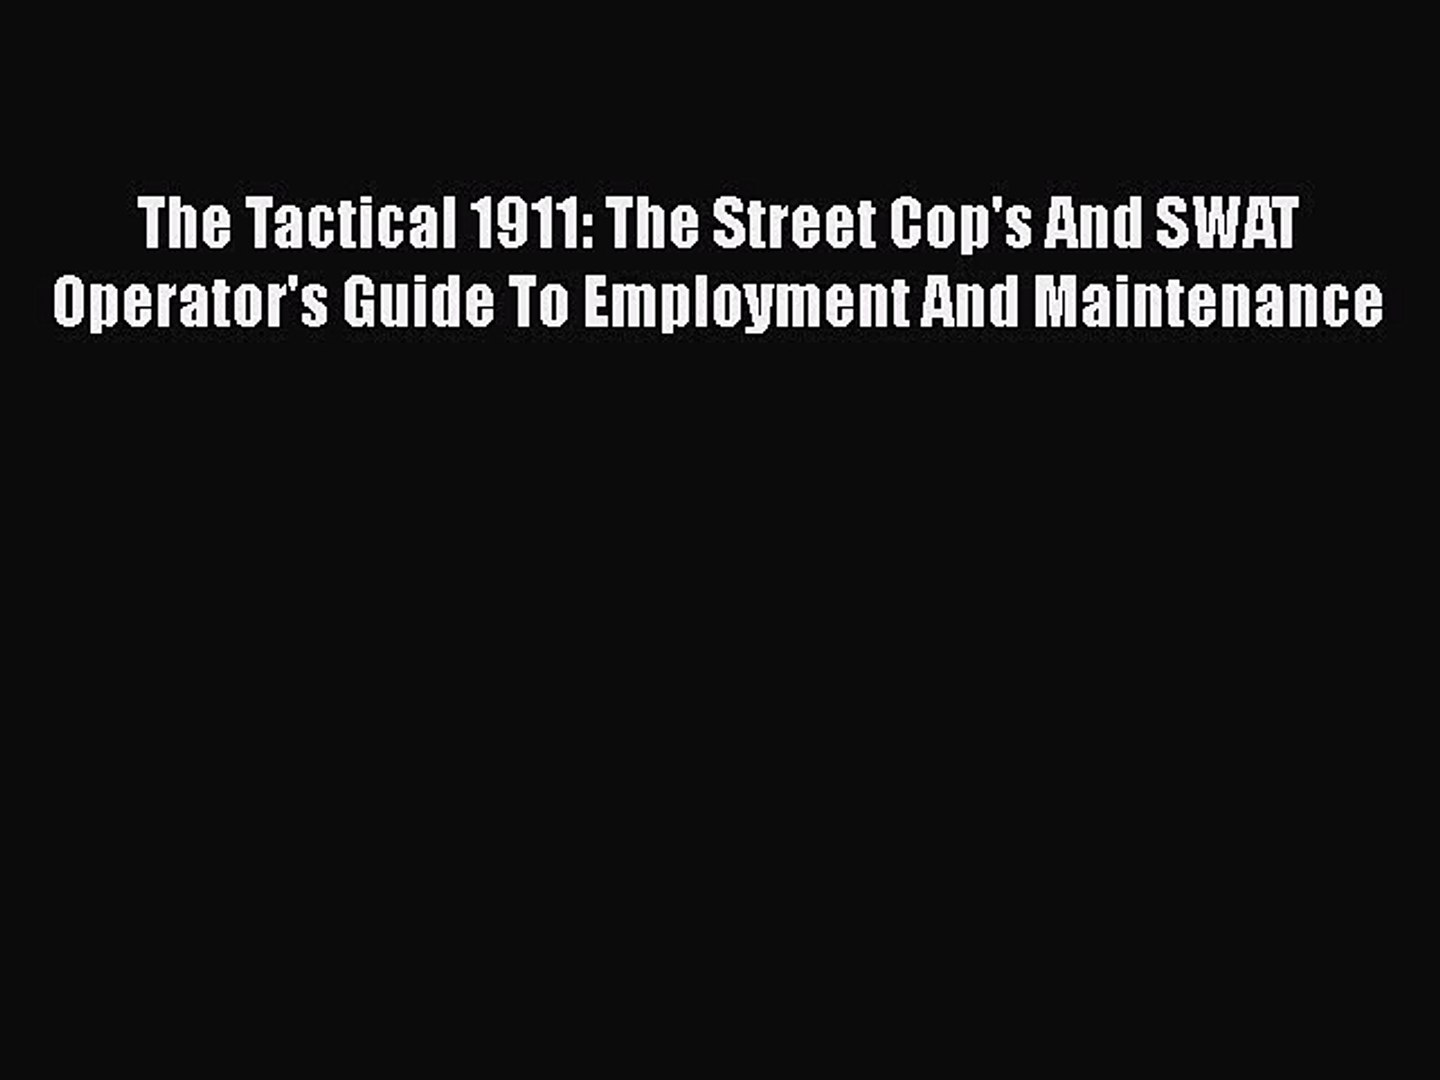 Download The Tactical 1911: The Street Cop's And SWAT Operator's Guide To Employment And Maintenance